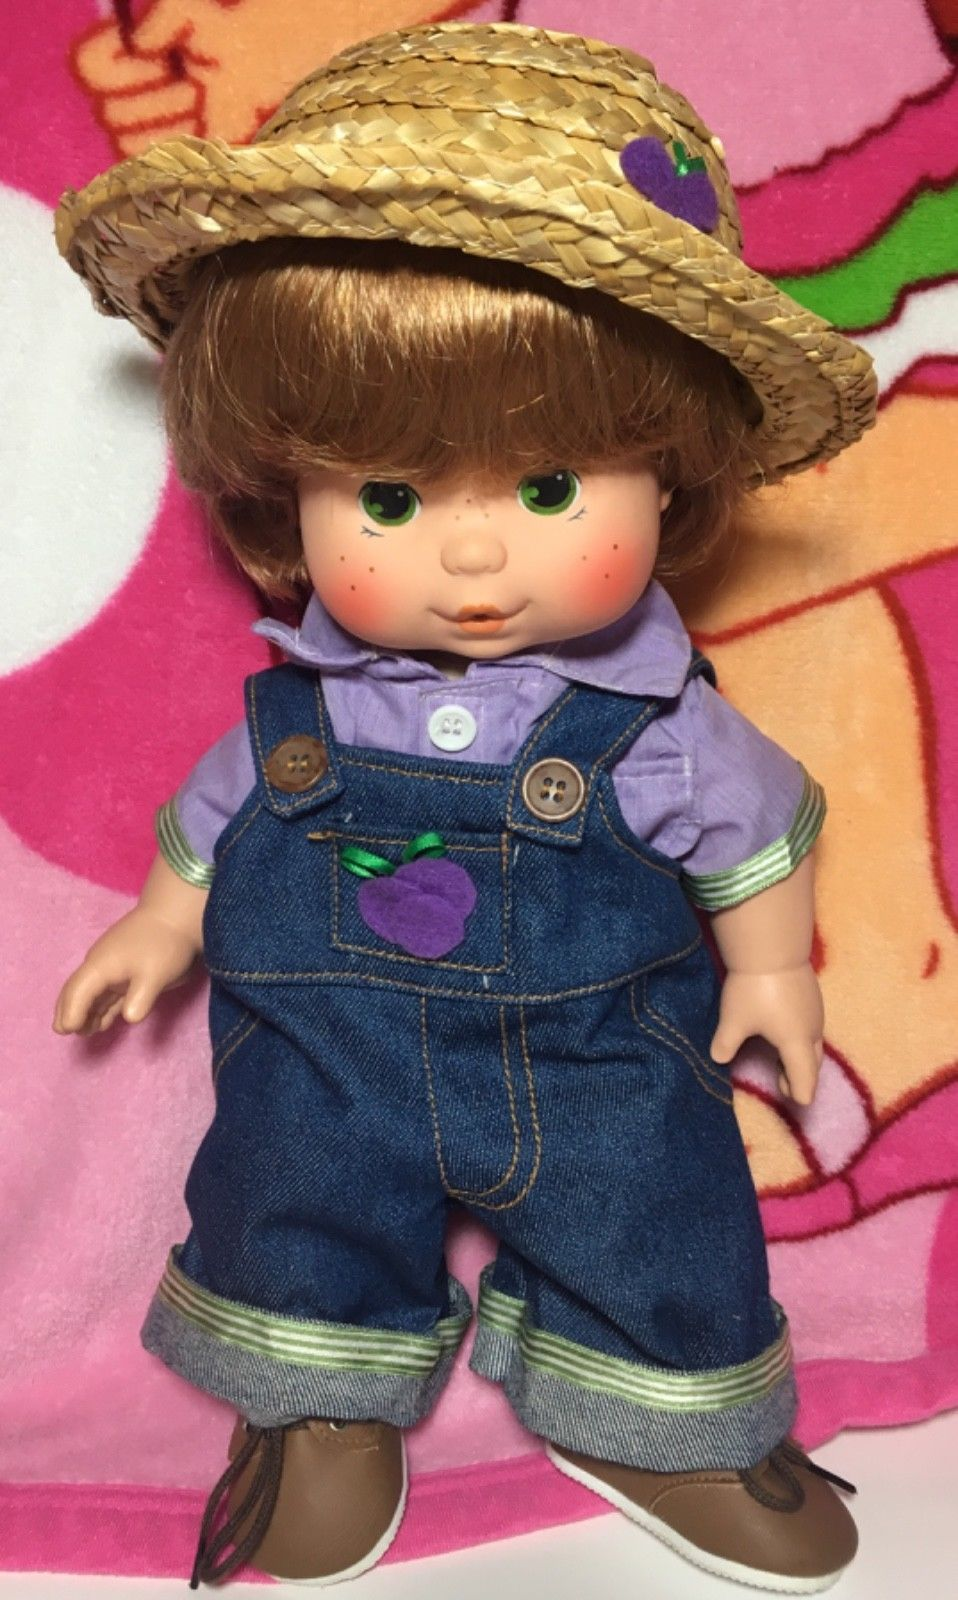 https://www.ebay.com/itm/Strawberry-Shortcake-Vintage-Custom-OOAK-H ...